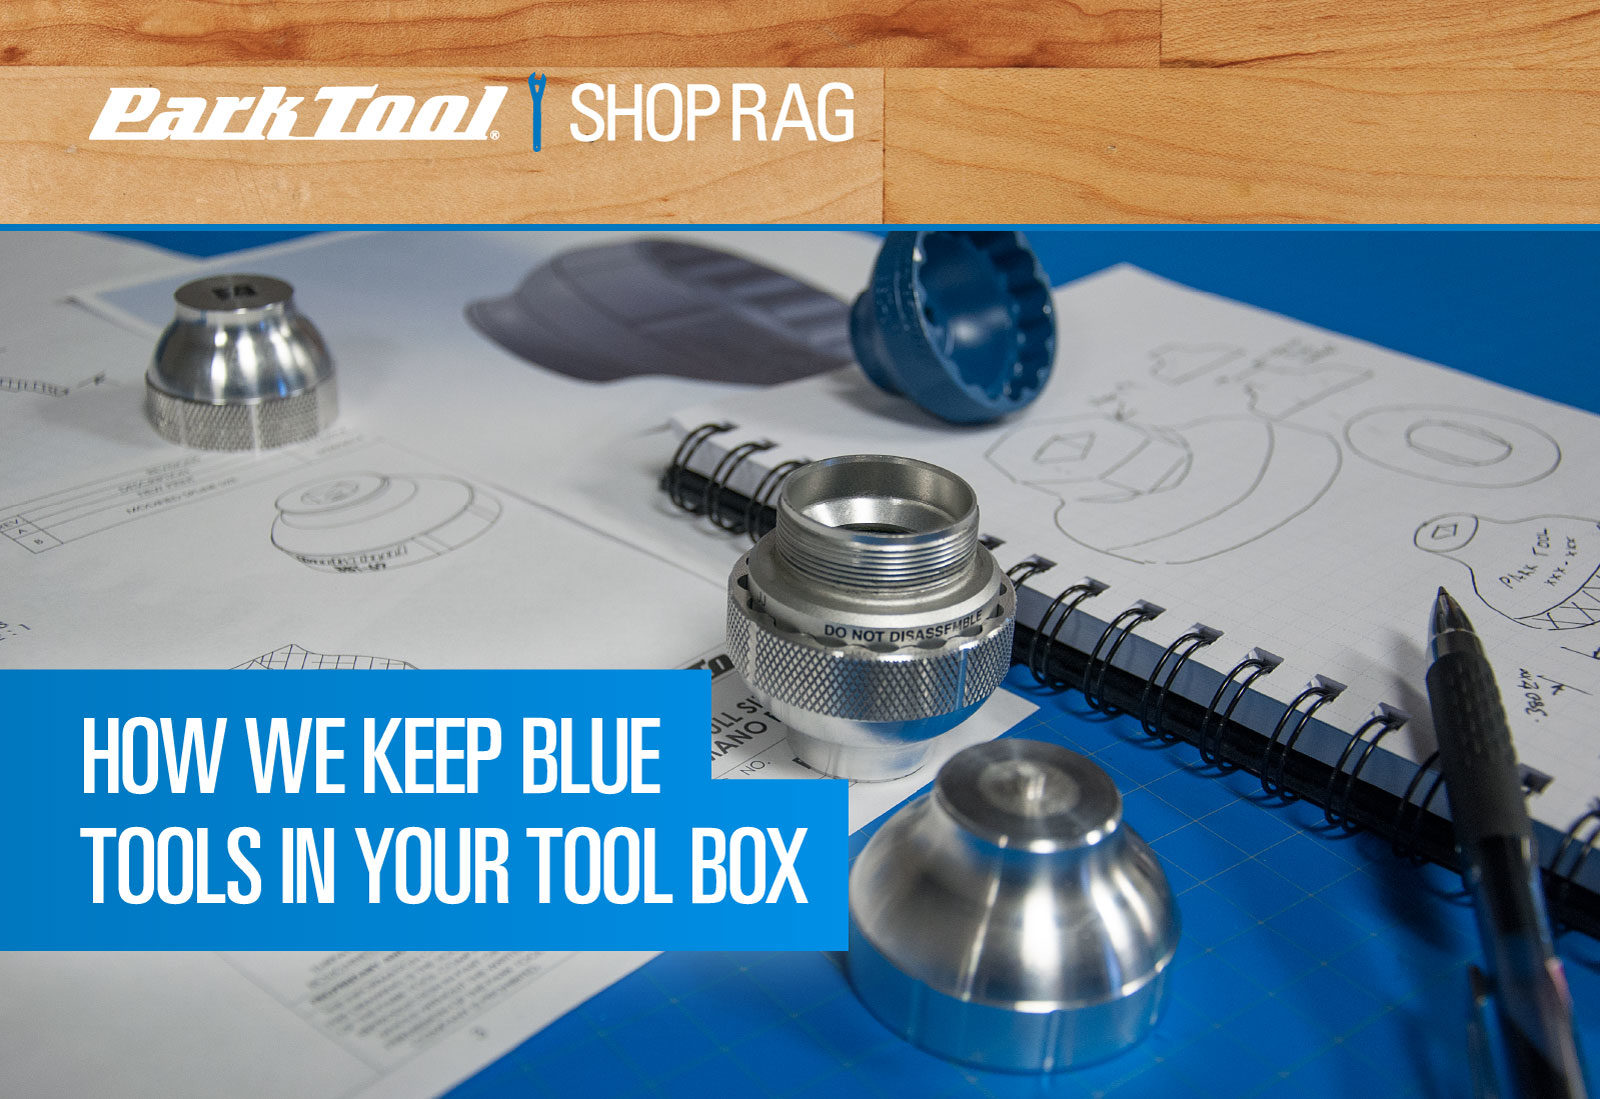 Title graphic for how we keep blue tools in your tool box